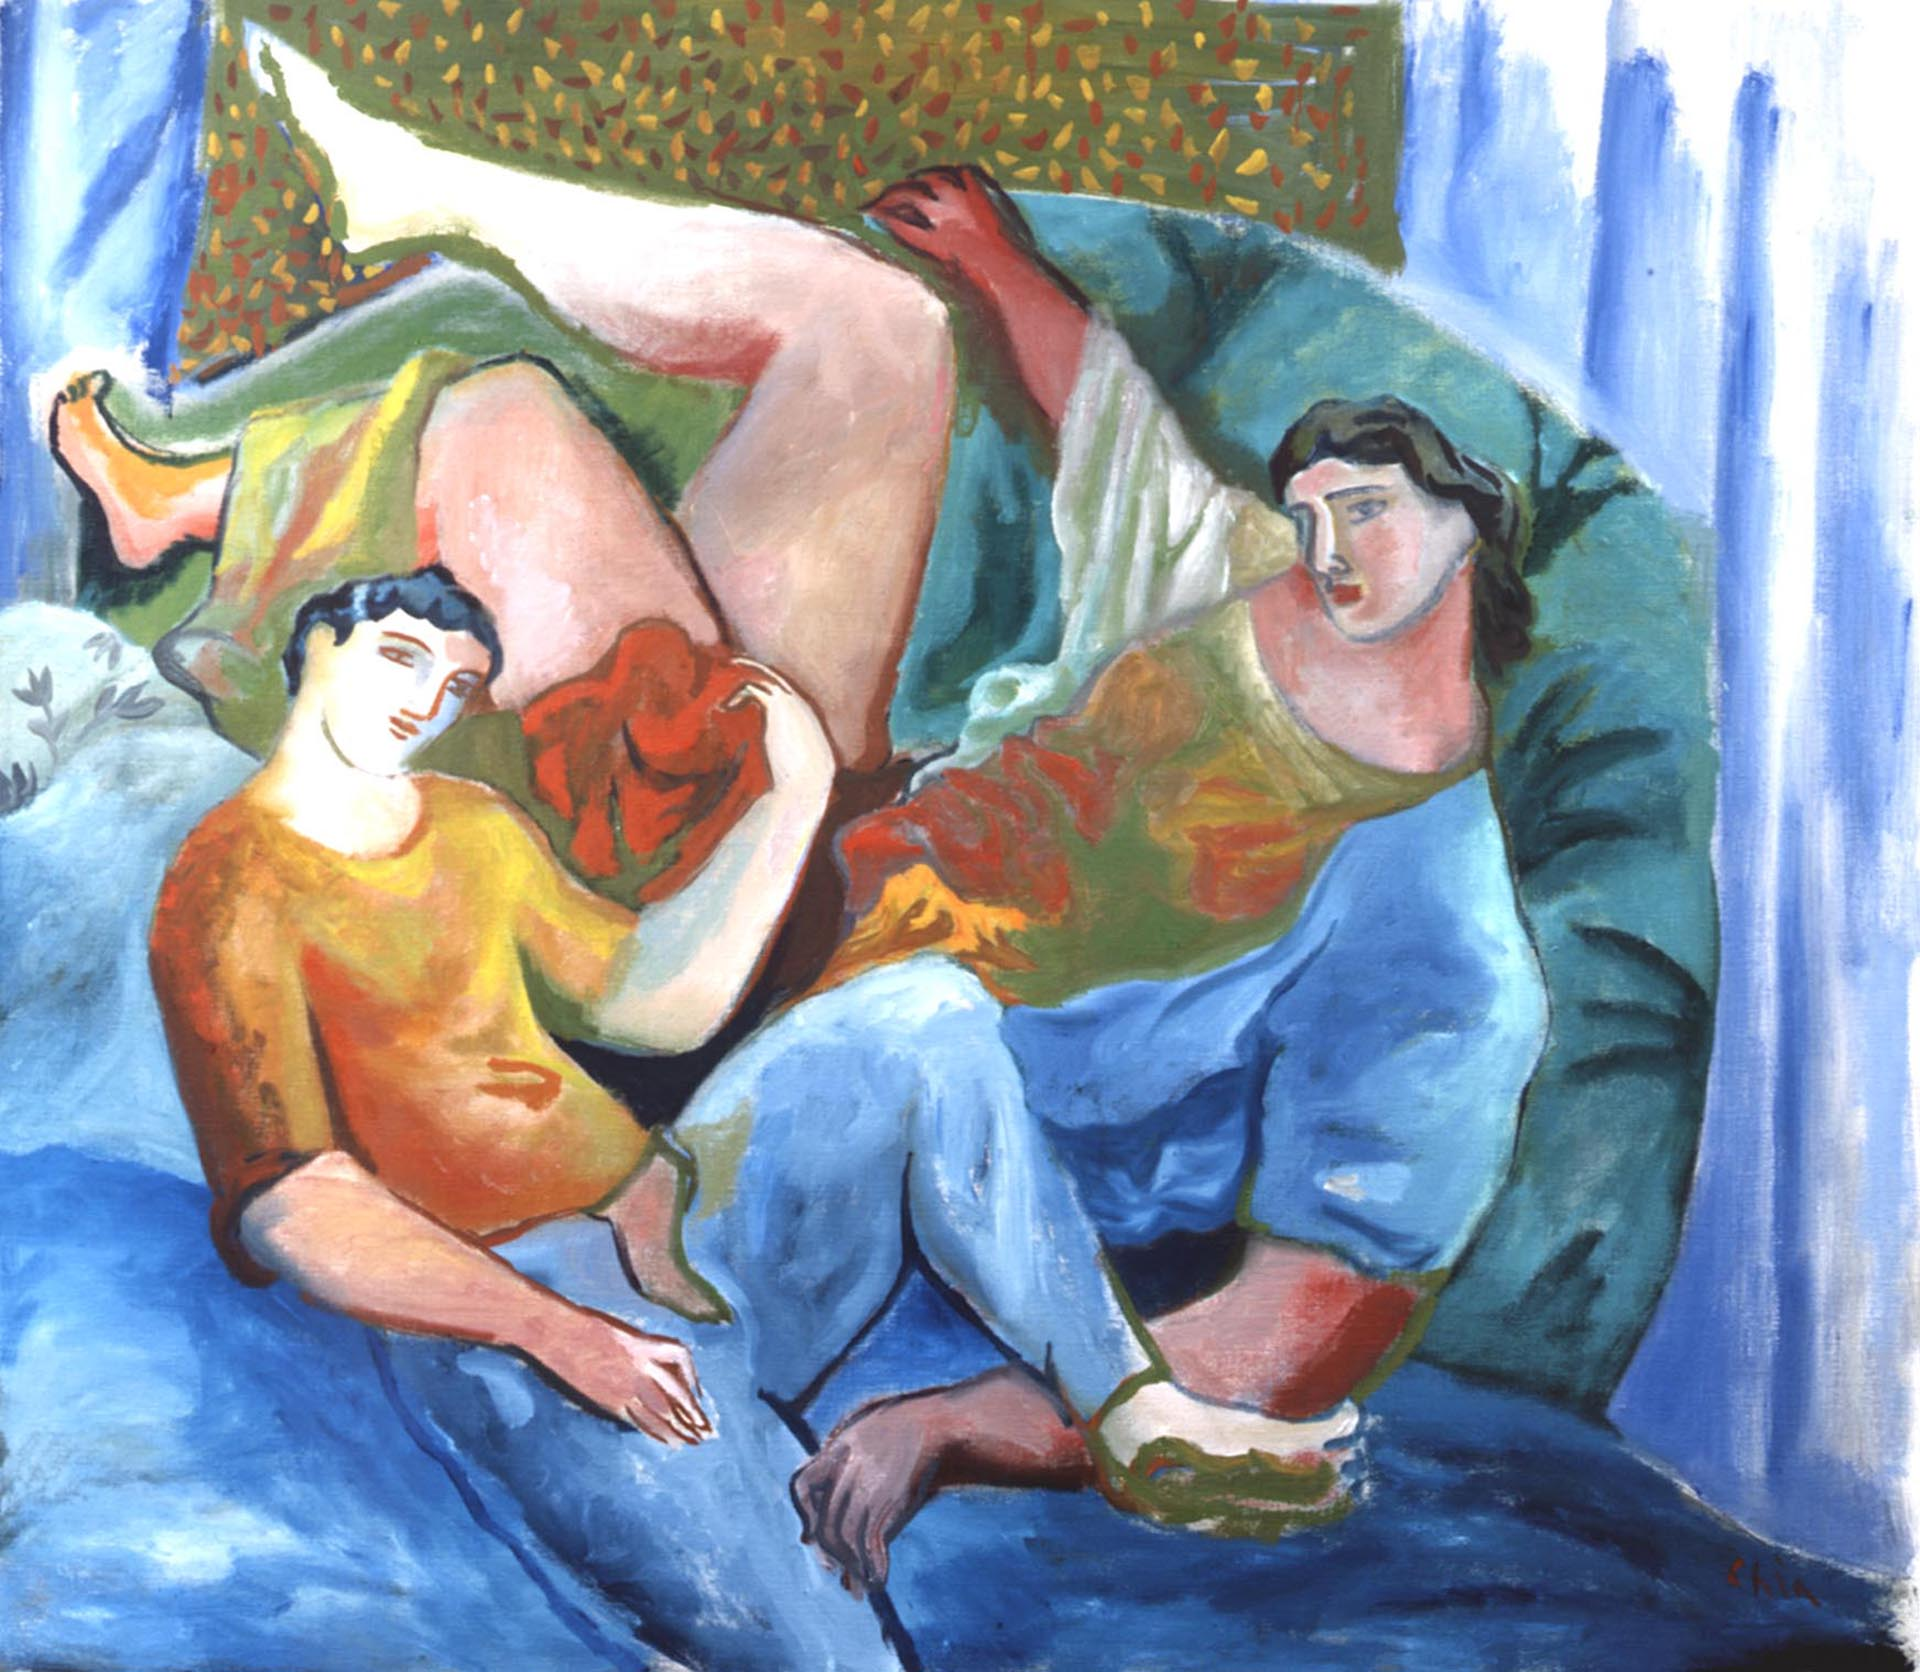 Chia_Couple-at-rest_2006_160x180-cm